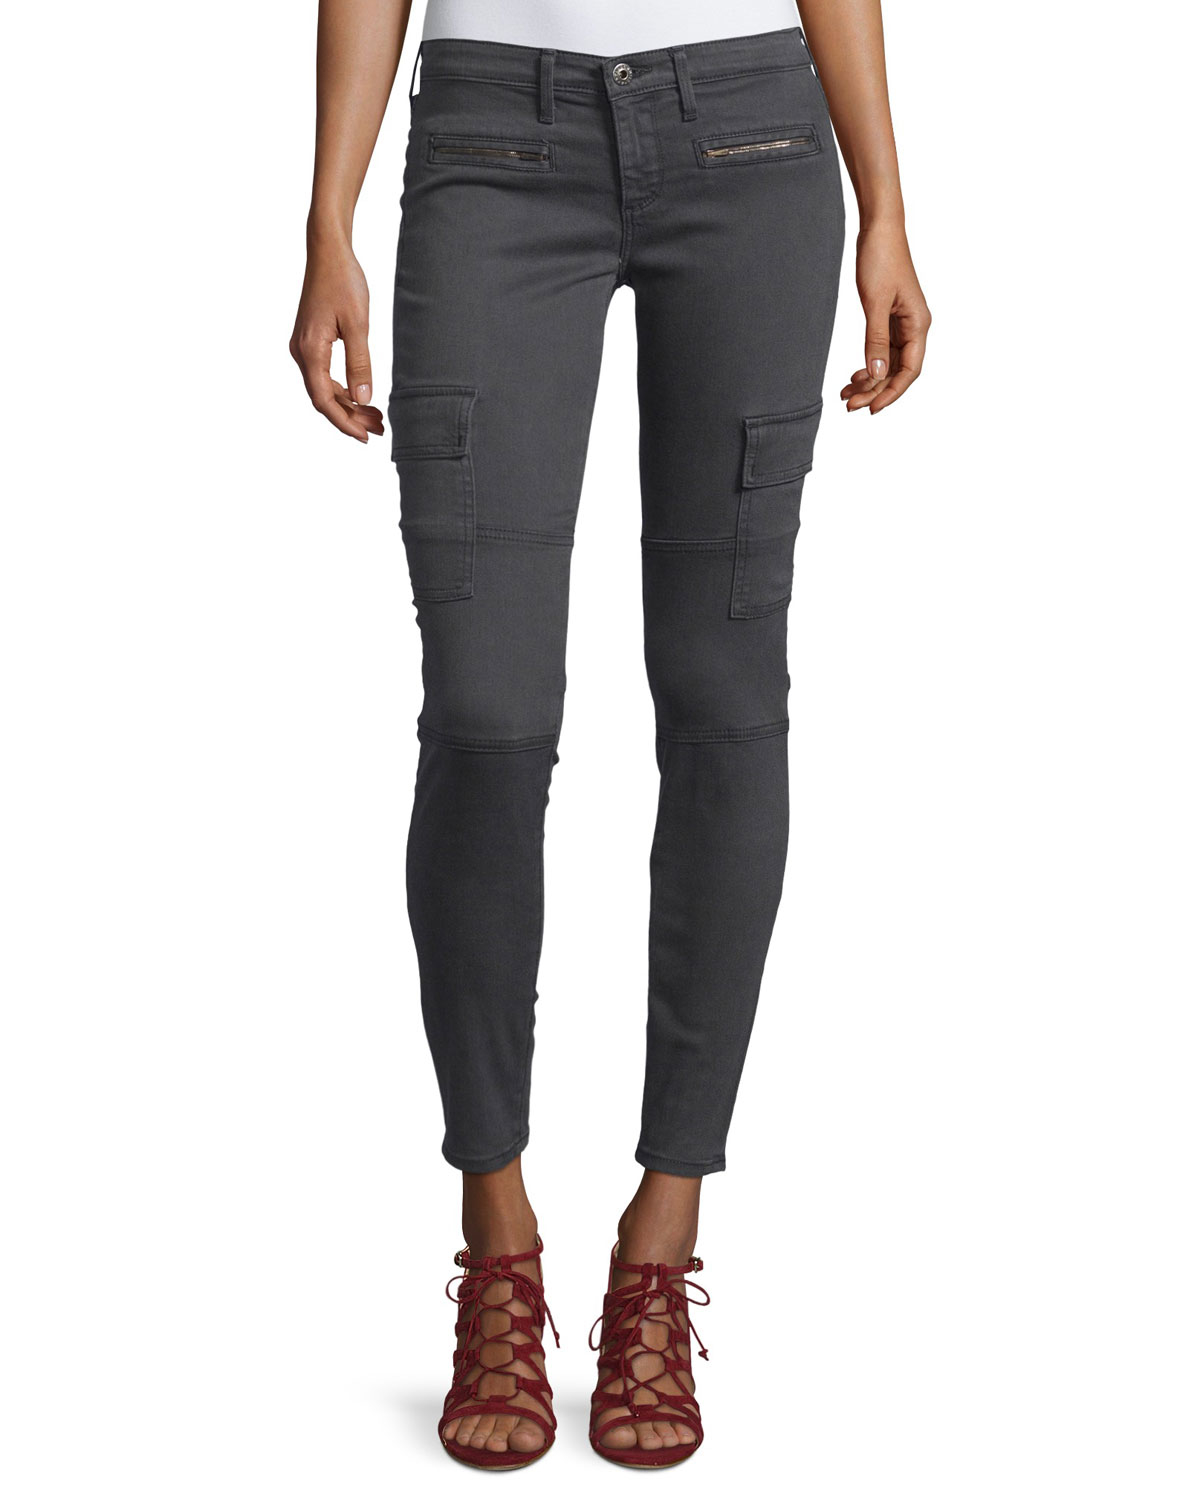 Enjoy free shipping and easy returns every day at Kohl's. Find great deals on Womens Black Skinny Pants at Kohl's today!